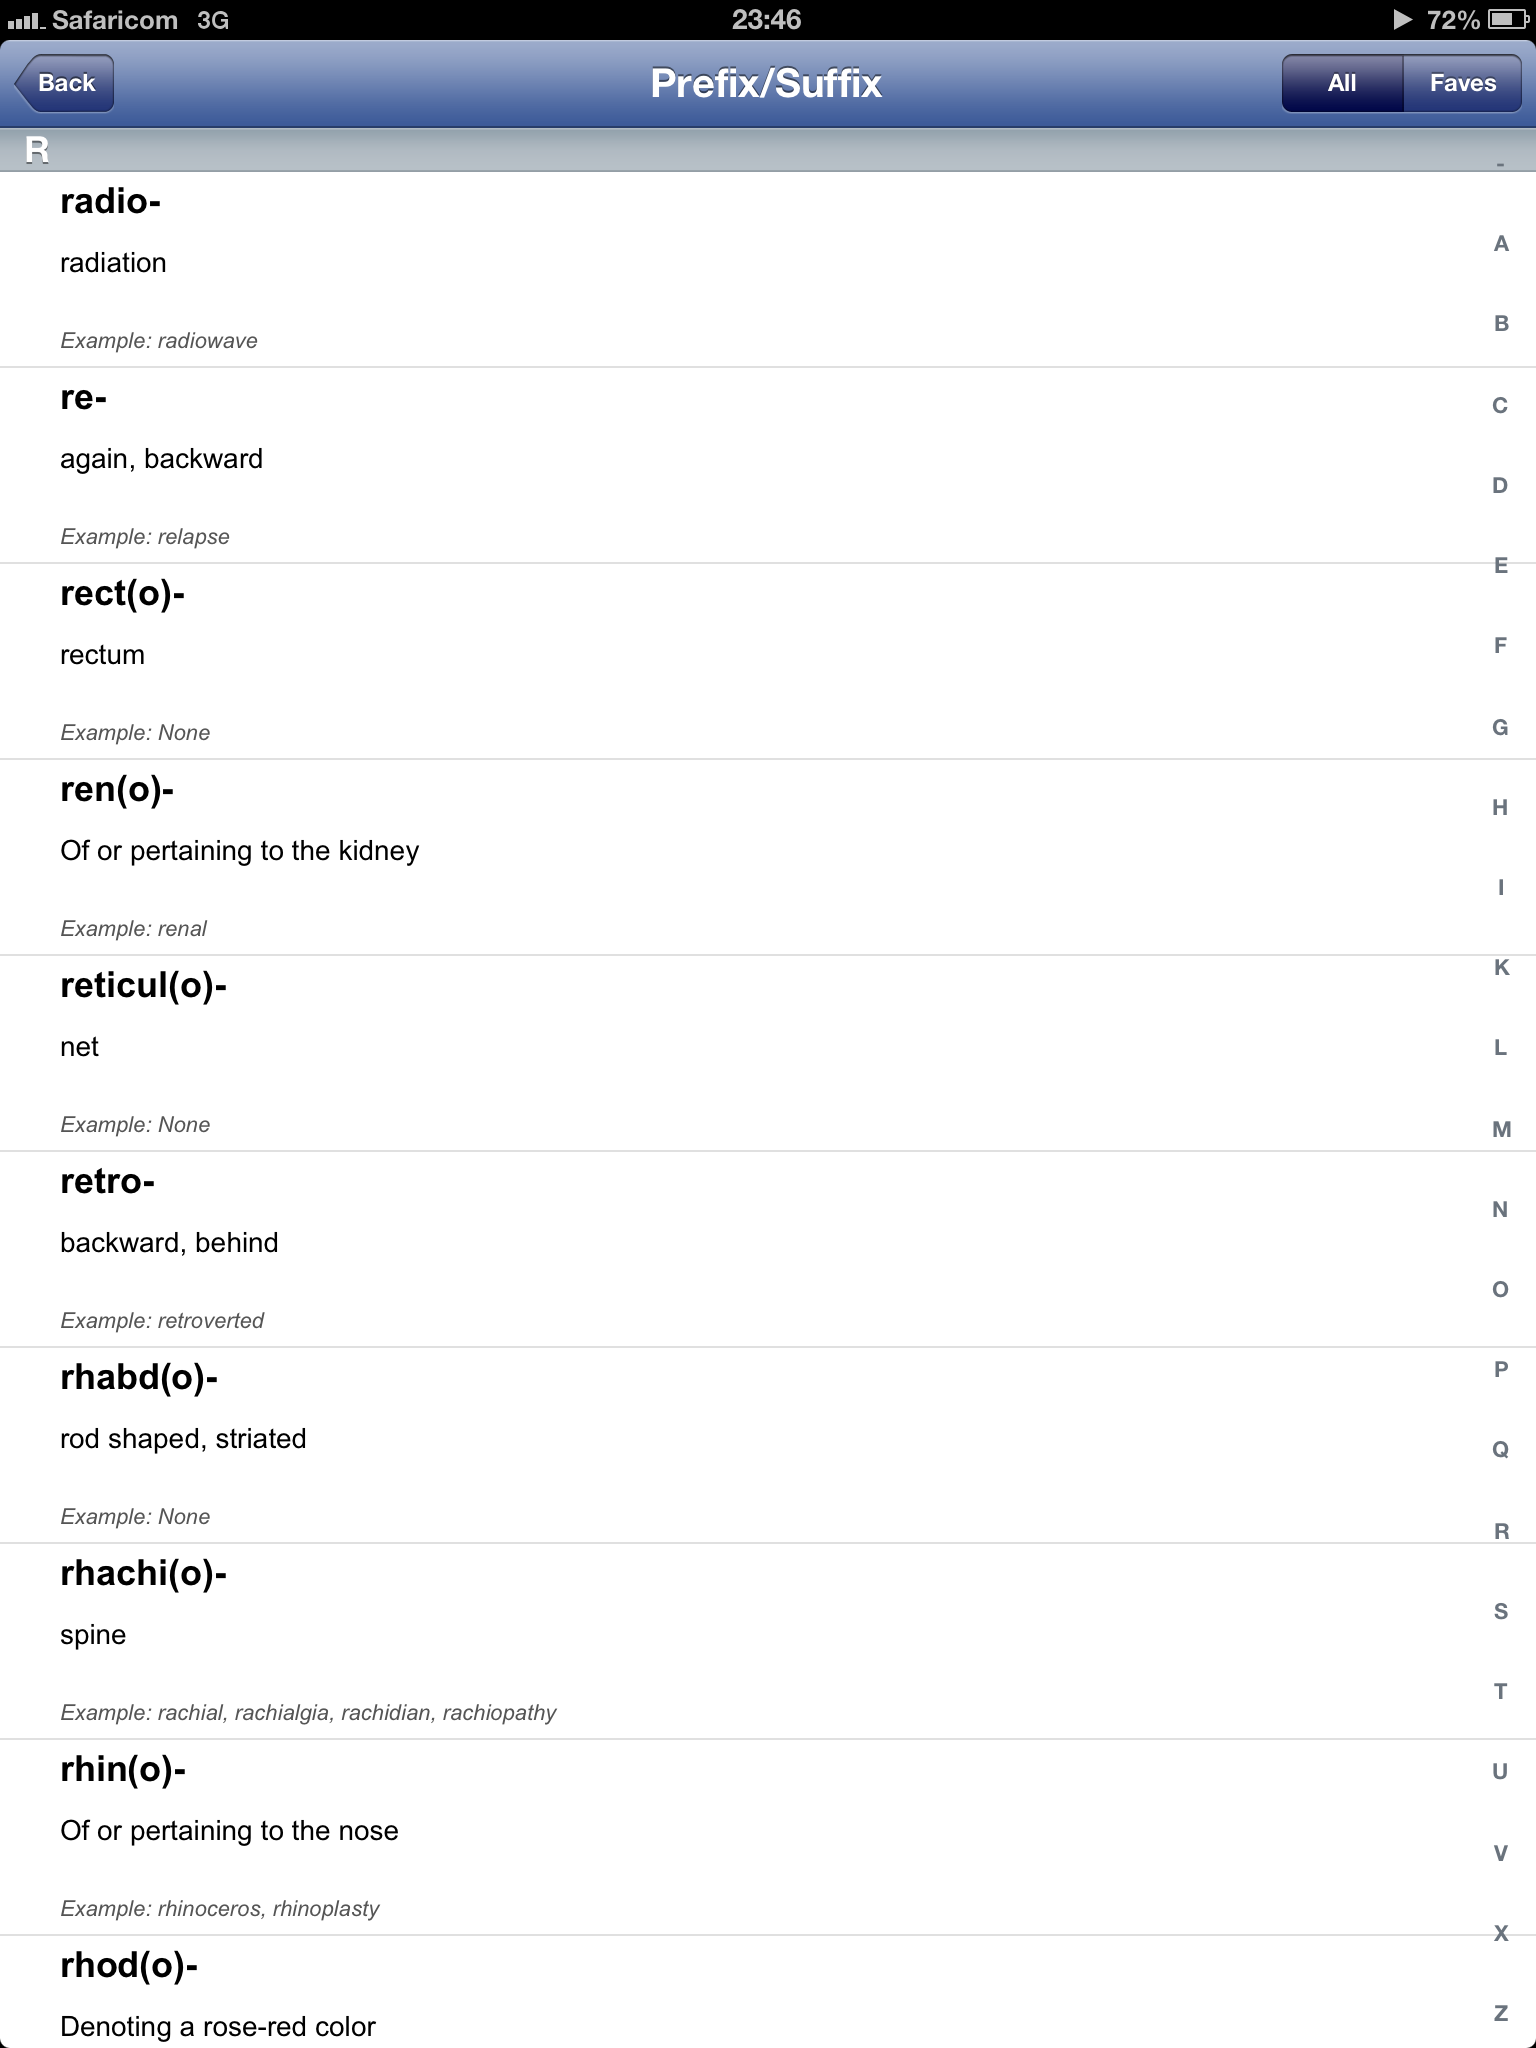 Medical abbreviations poa - The Drugs Meds Section Provides A Searchable Alphabetized Monograph Of Drugs The Information For A Particular Drug In The App Is Limited